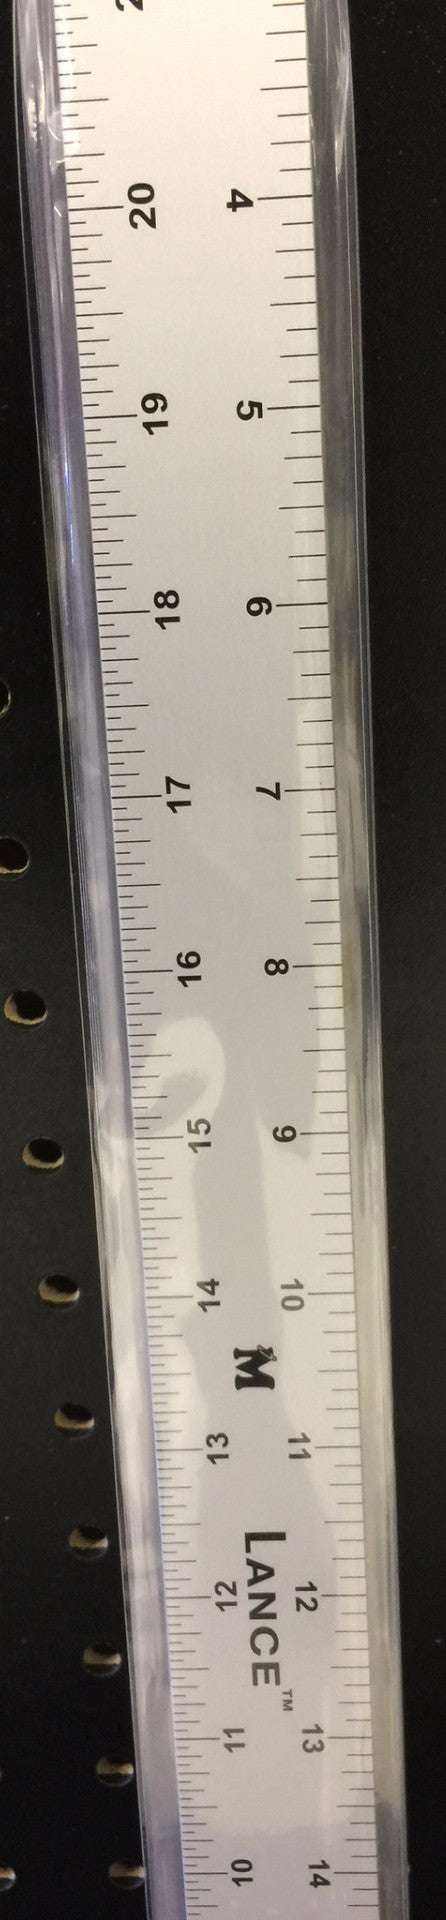 LANCE STRAIGHT EDGE ALUMINUM RULER